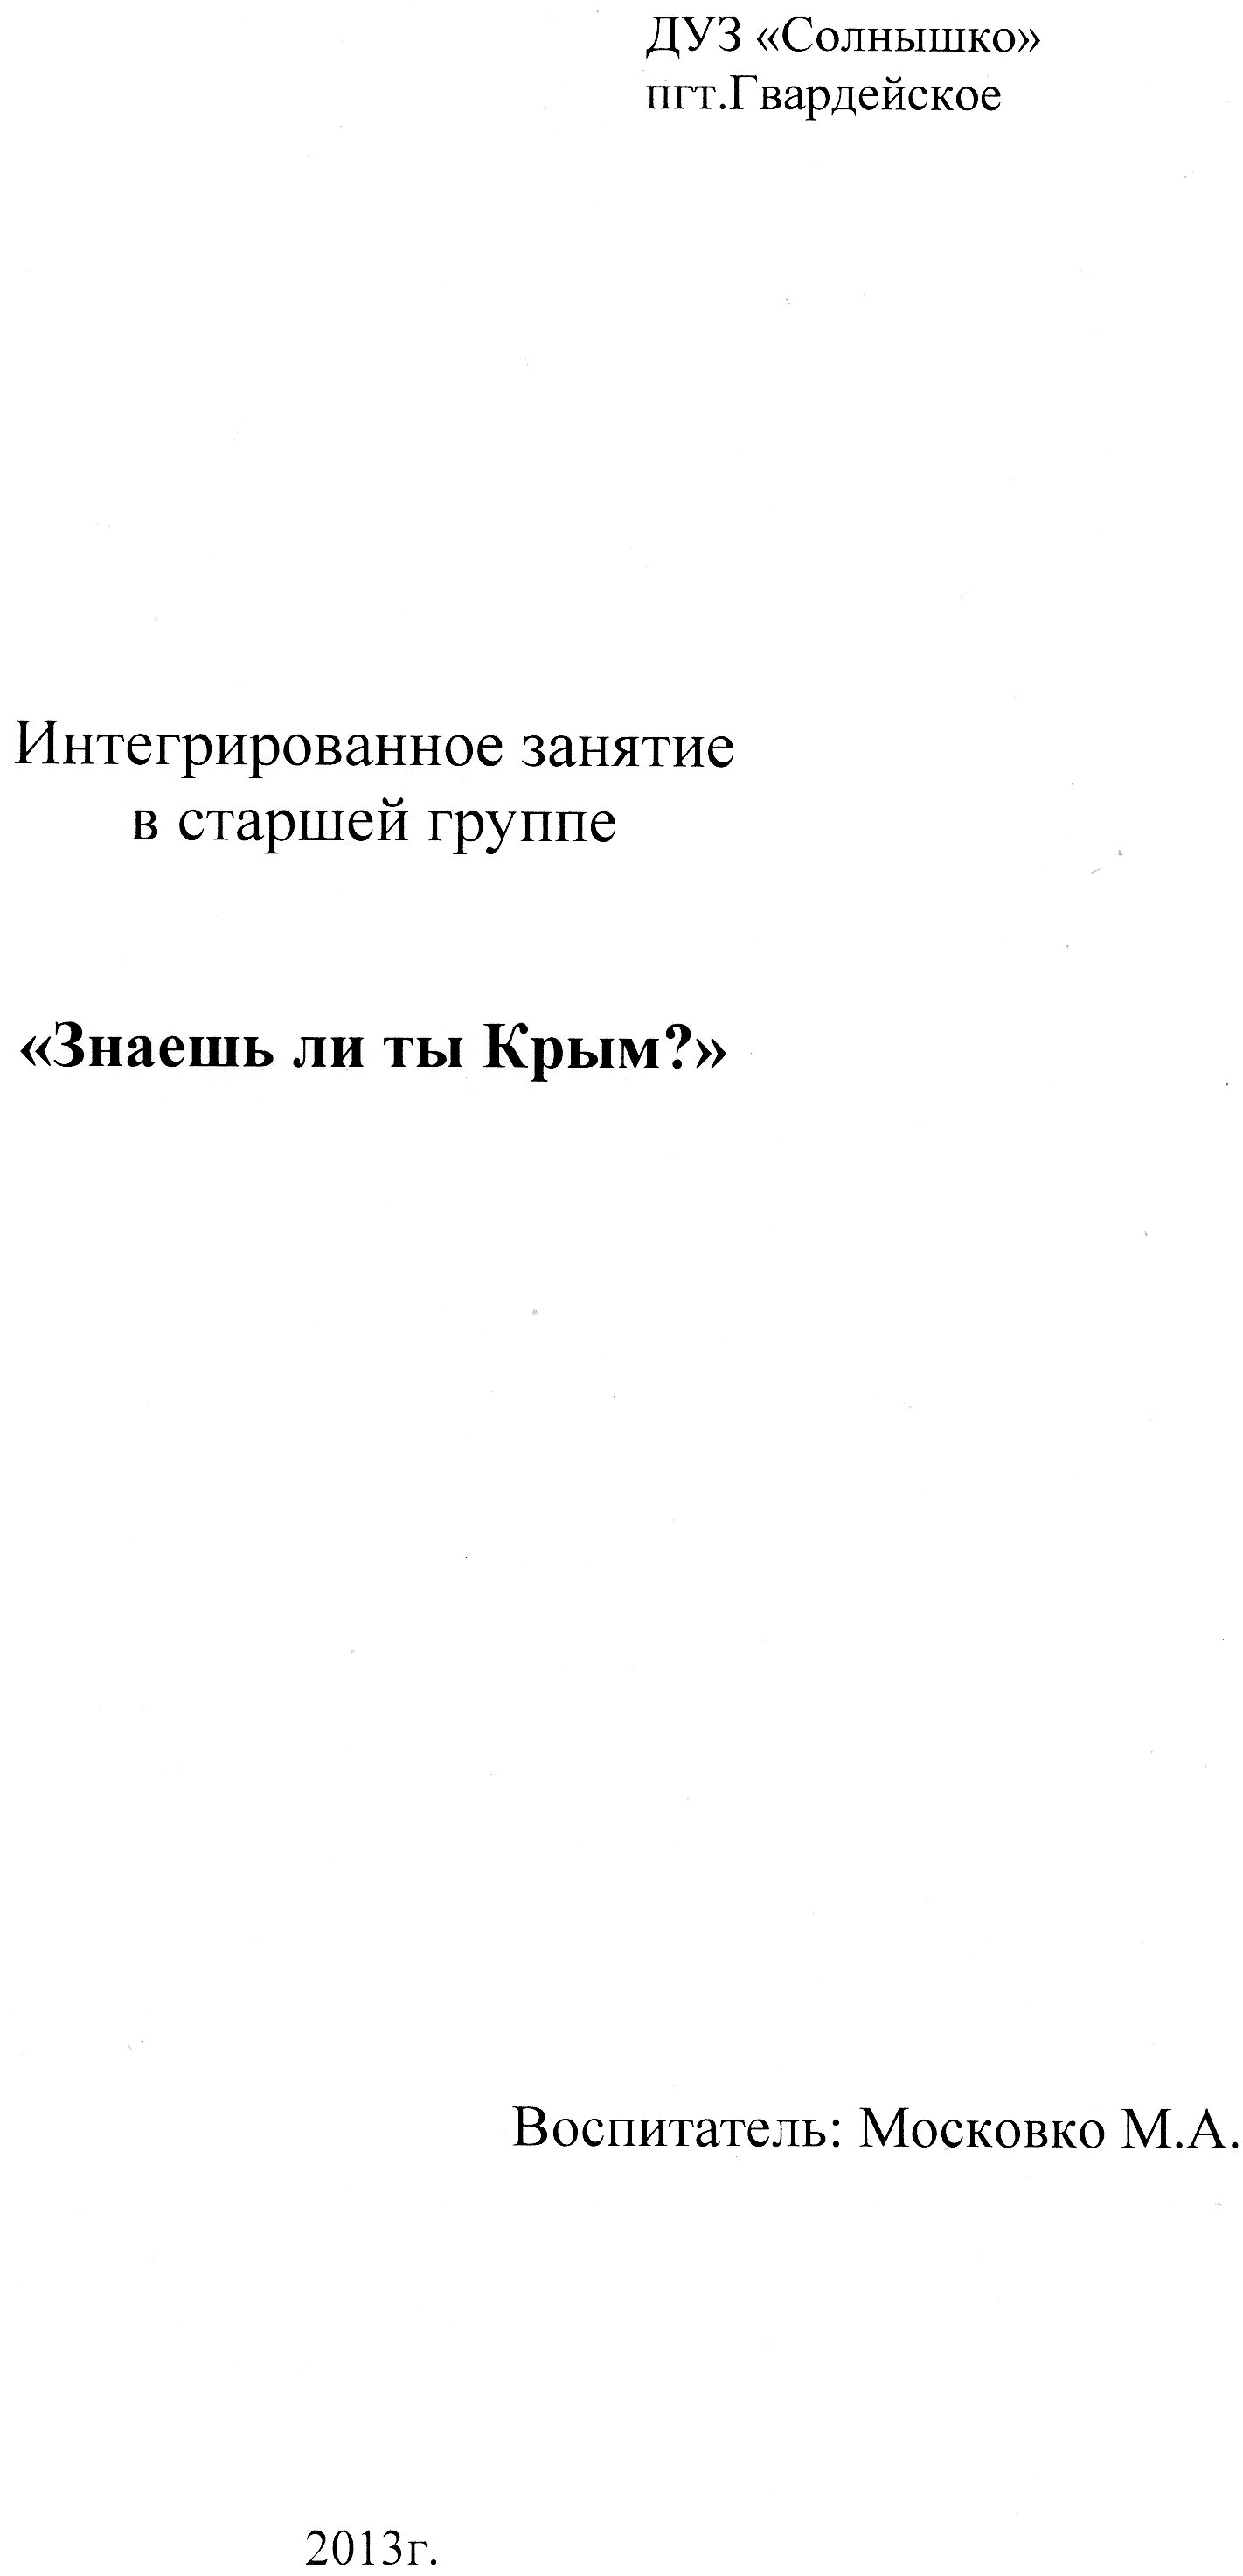 C:\Users\Александр\Pictures\img038.jpg